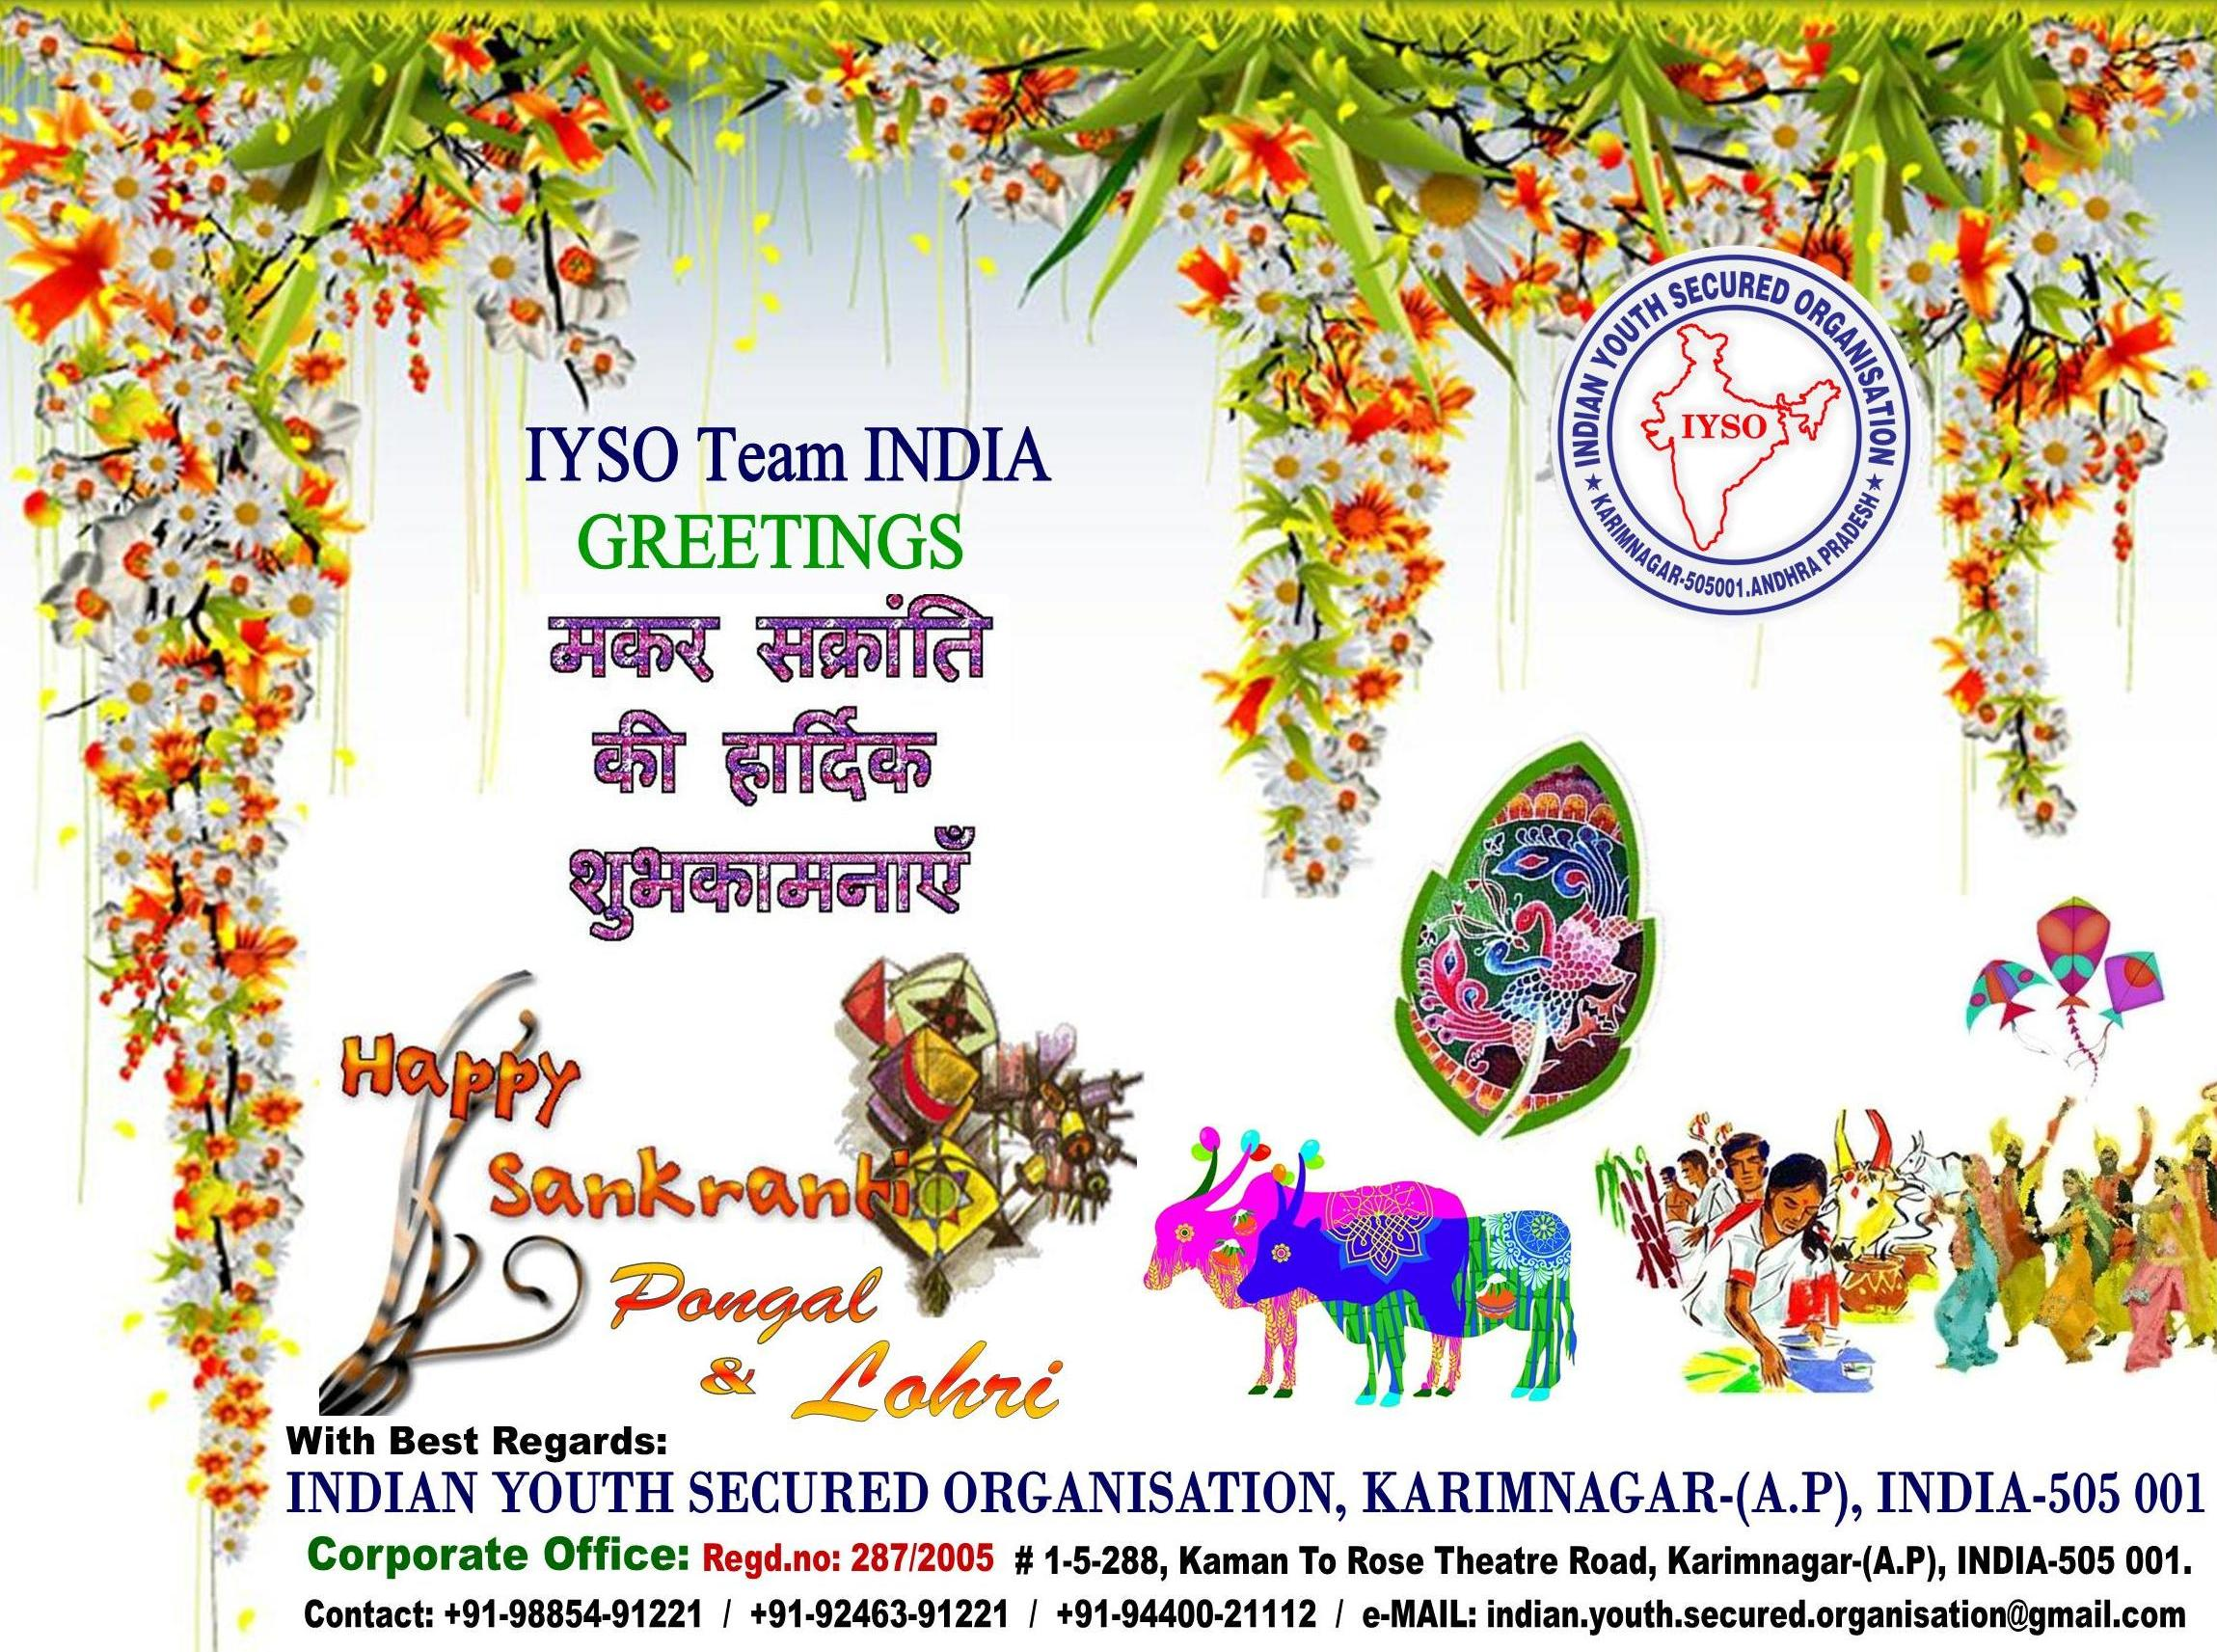 Personal greeetings i greet you all a happy makara sankranti lohri i greet you all a happy makara sankranti lohri pongal jai bharath m4hsunfo